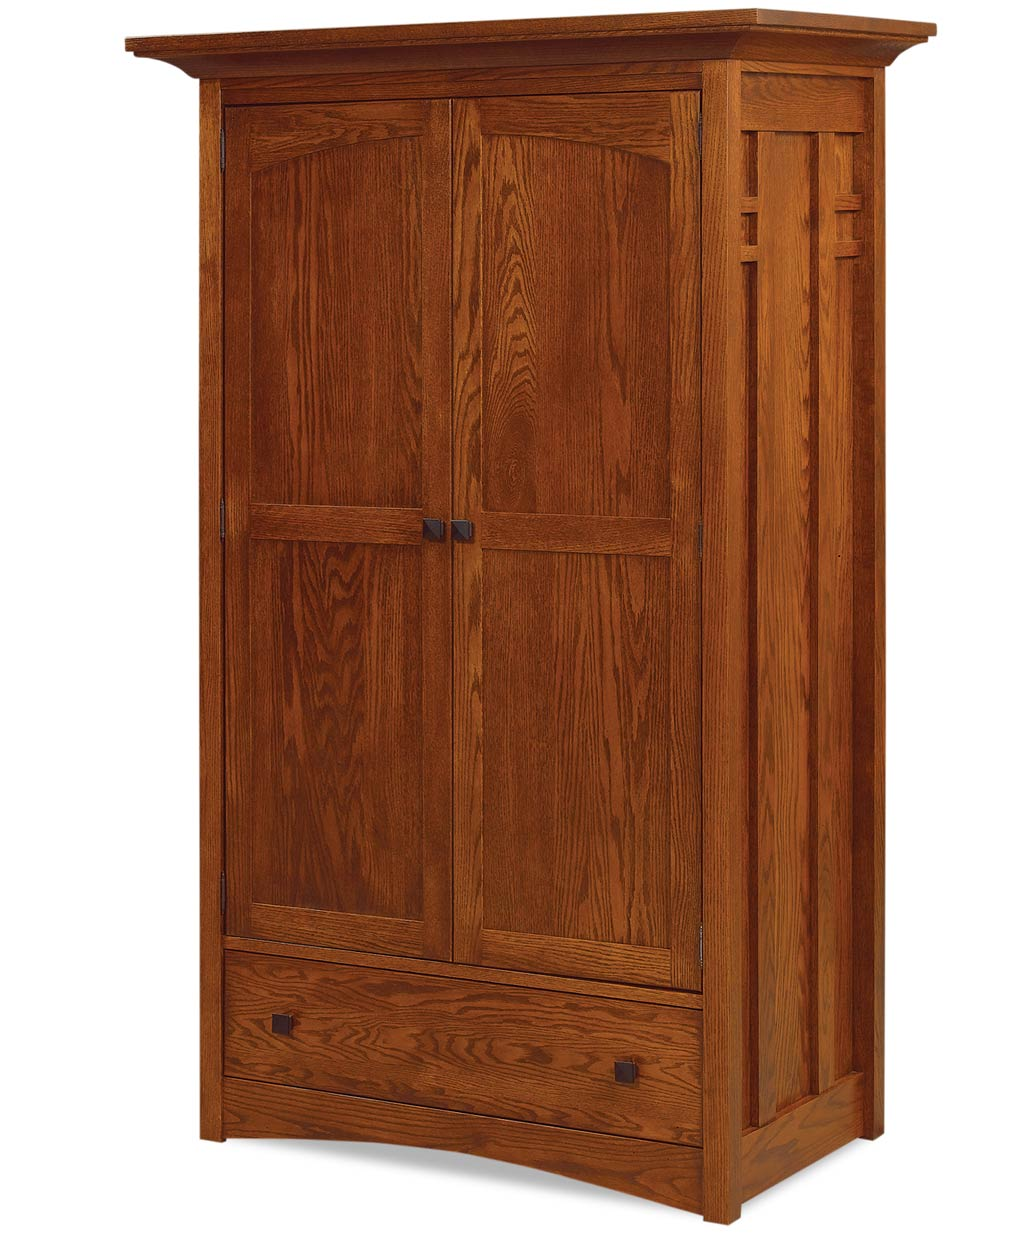 kascade wardrobe armoire amish direct furniture. Black Bedroom Furniture Sets. Home Design Ideas